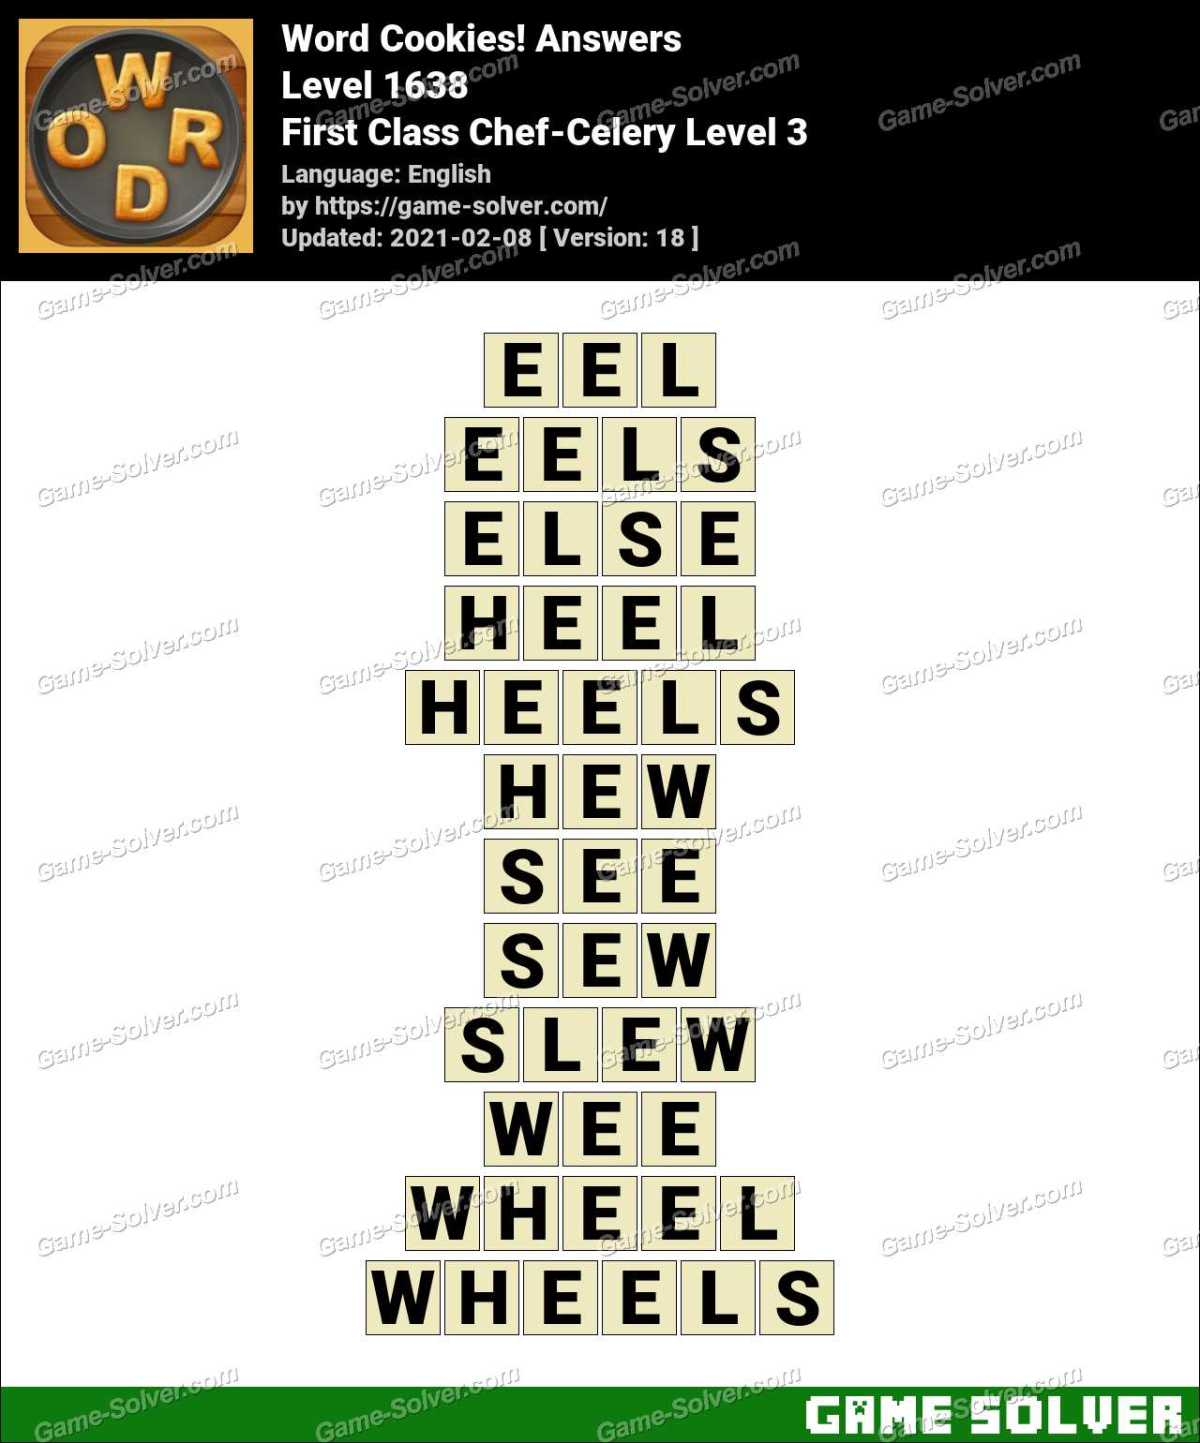 Word Cookies First Class Chef-Celery Level 3 Answers